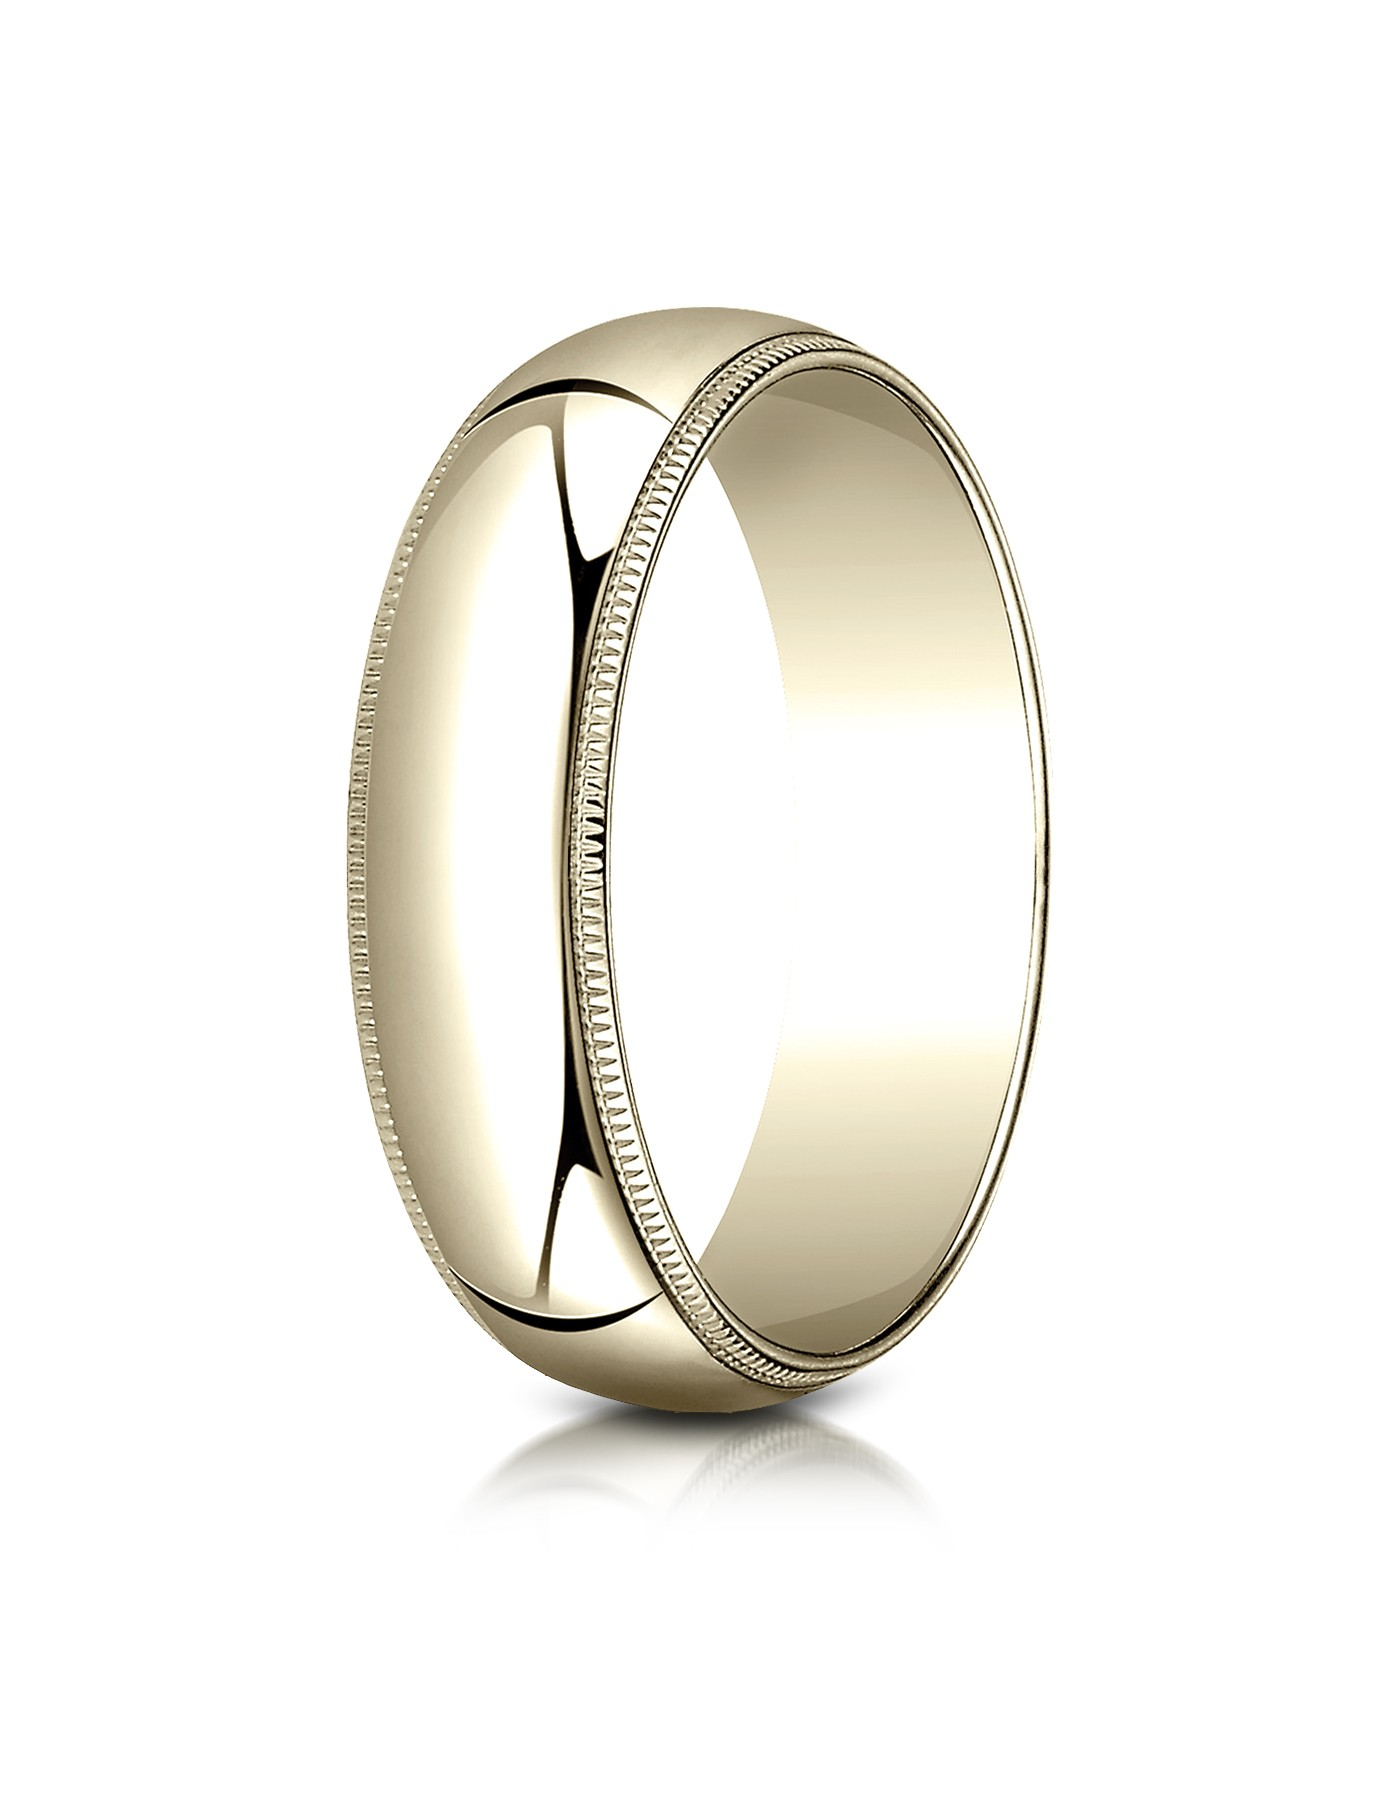 14k Yellow Gold 6mm Slightly Domed Traditional Oval Ring With Milgrain